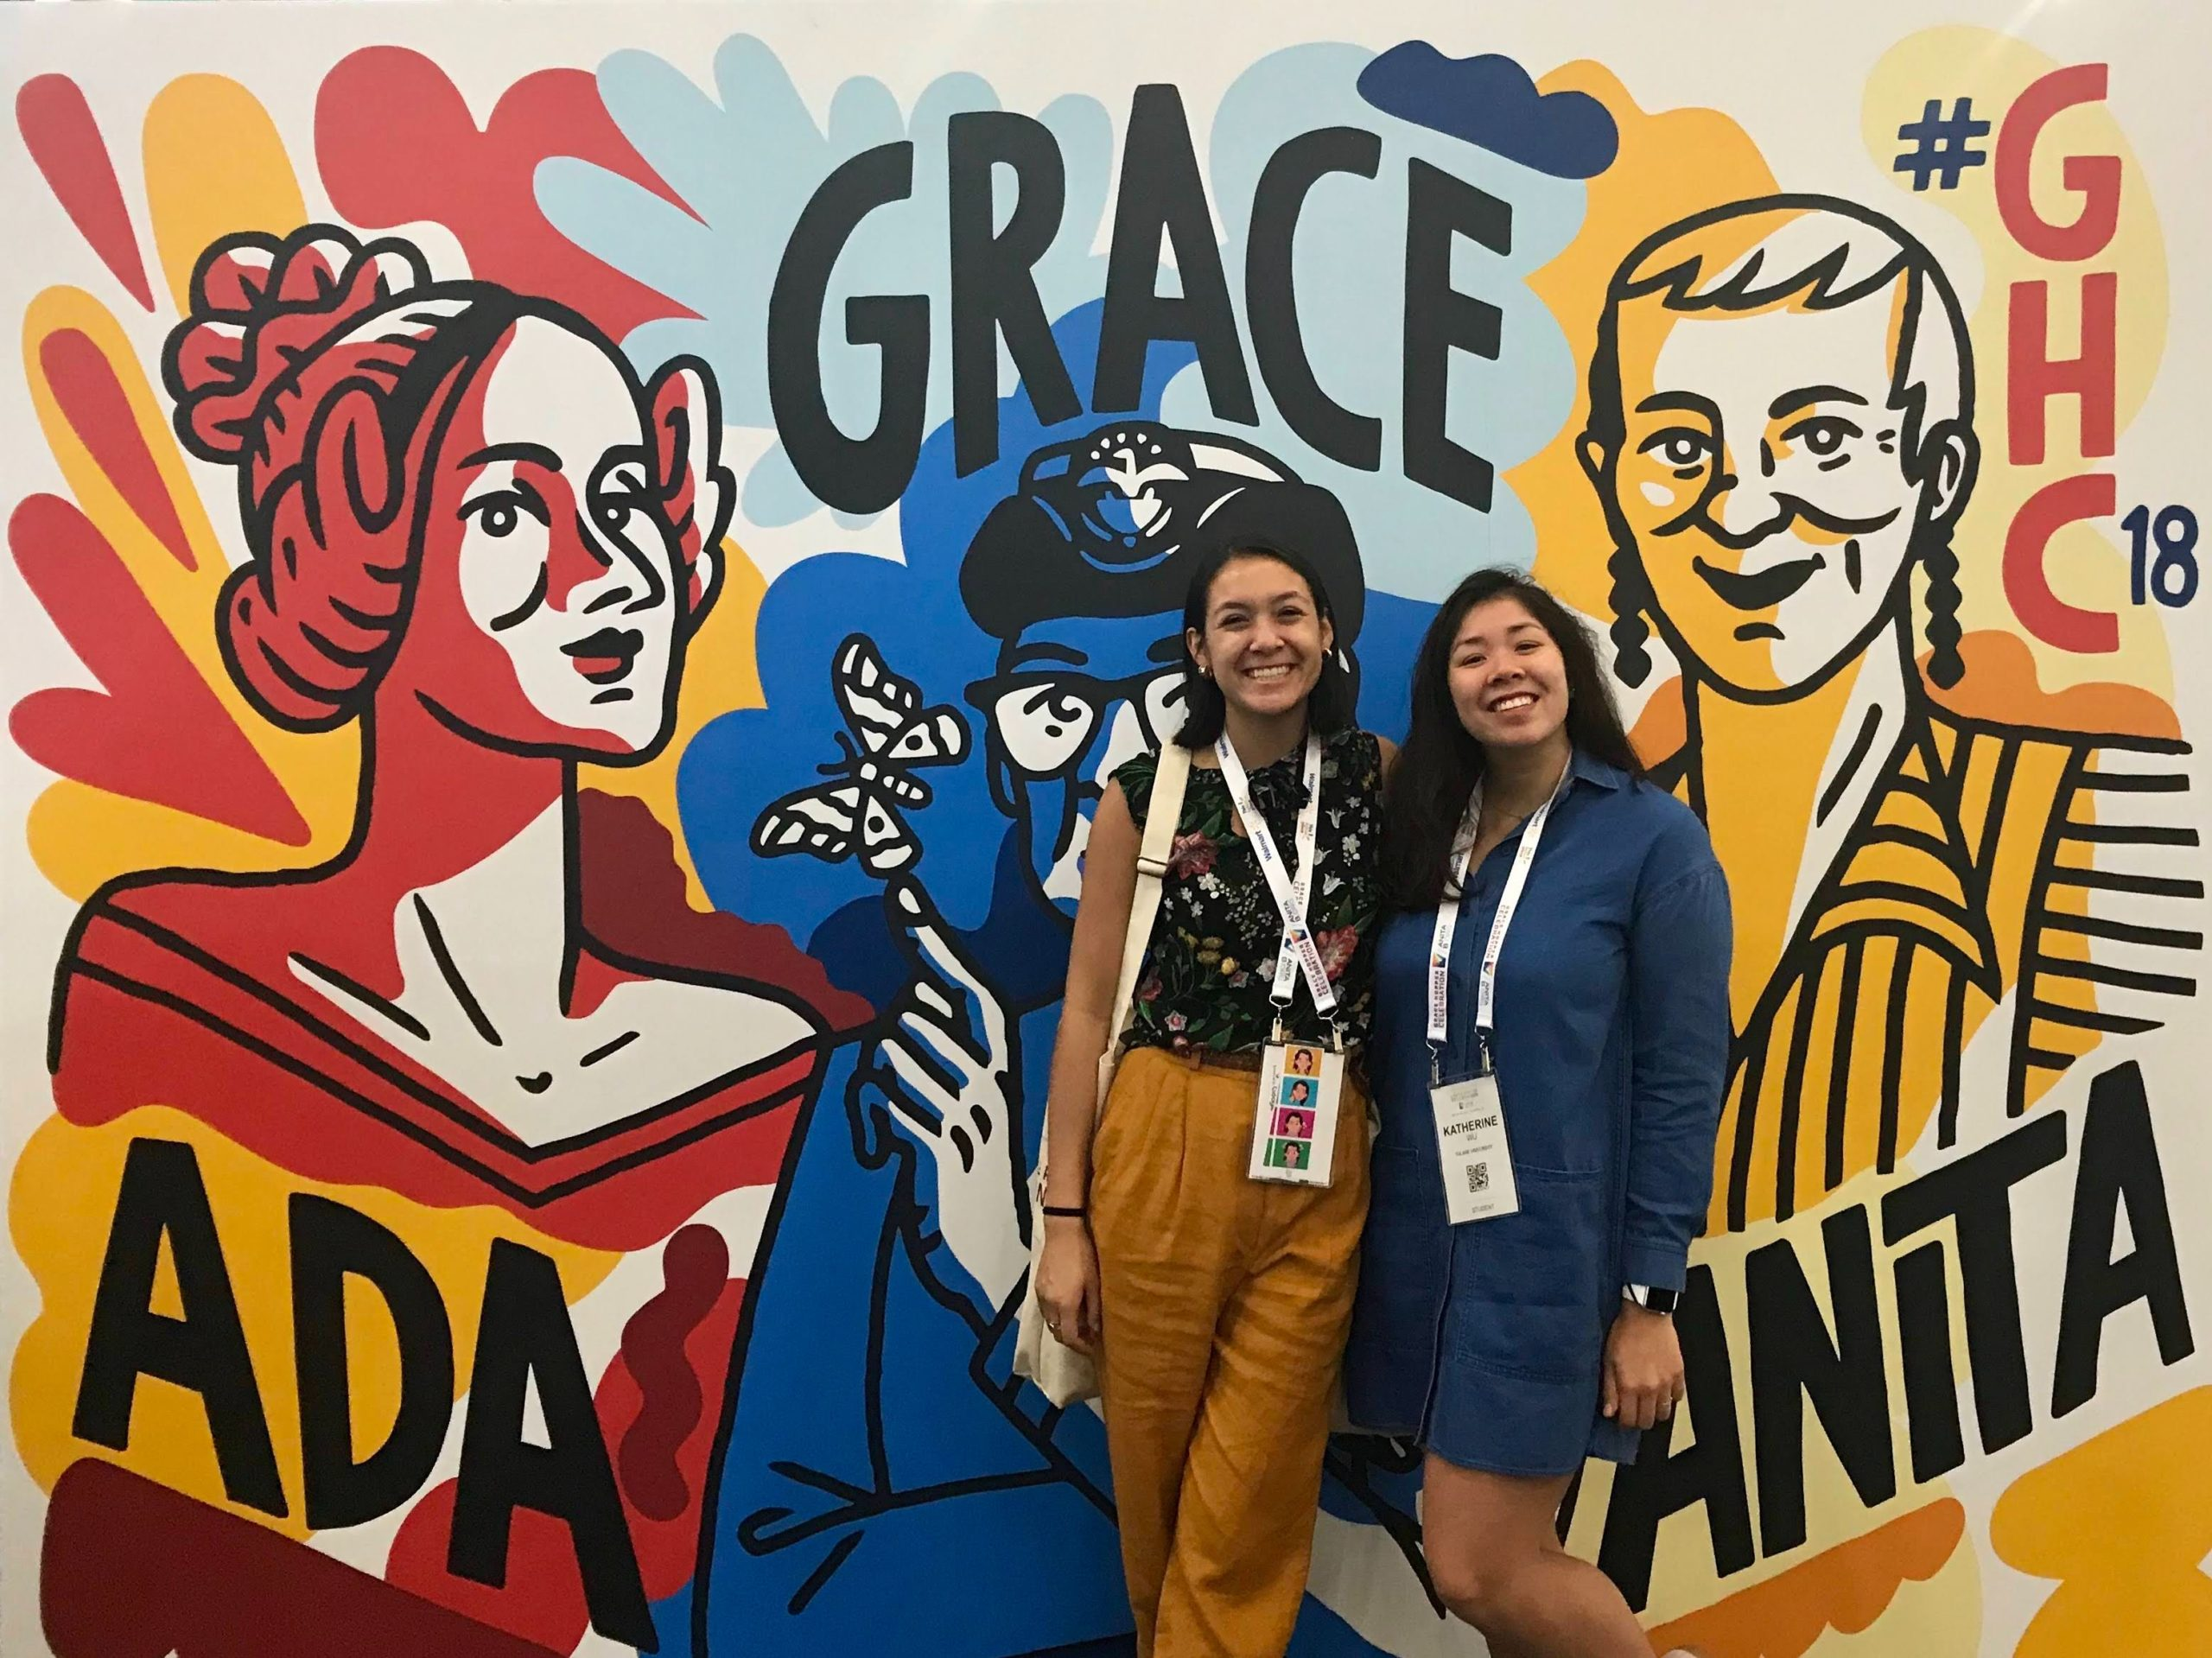 Grace Hopper Conference Guide